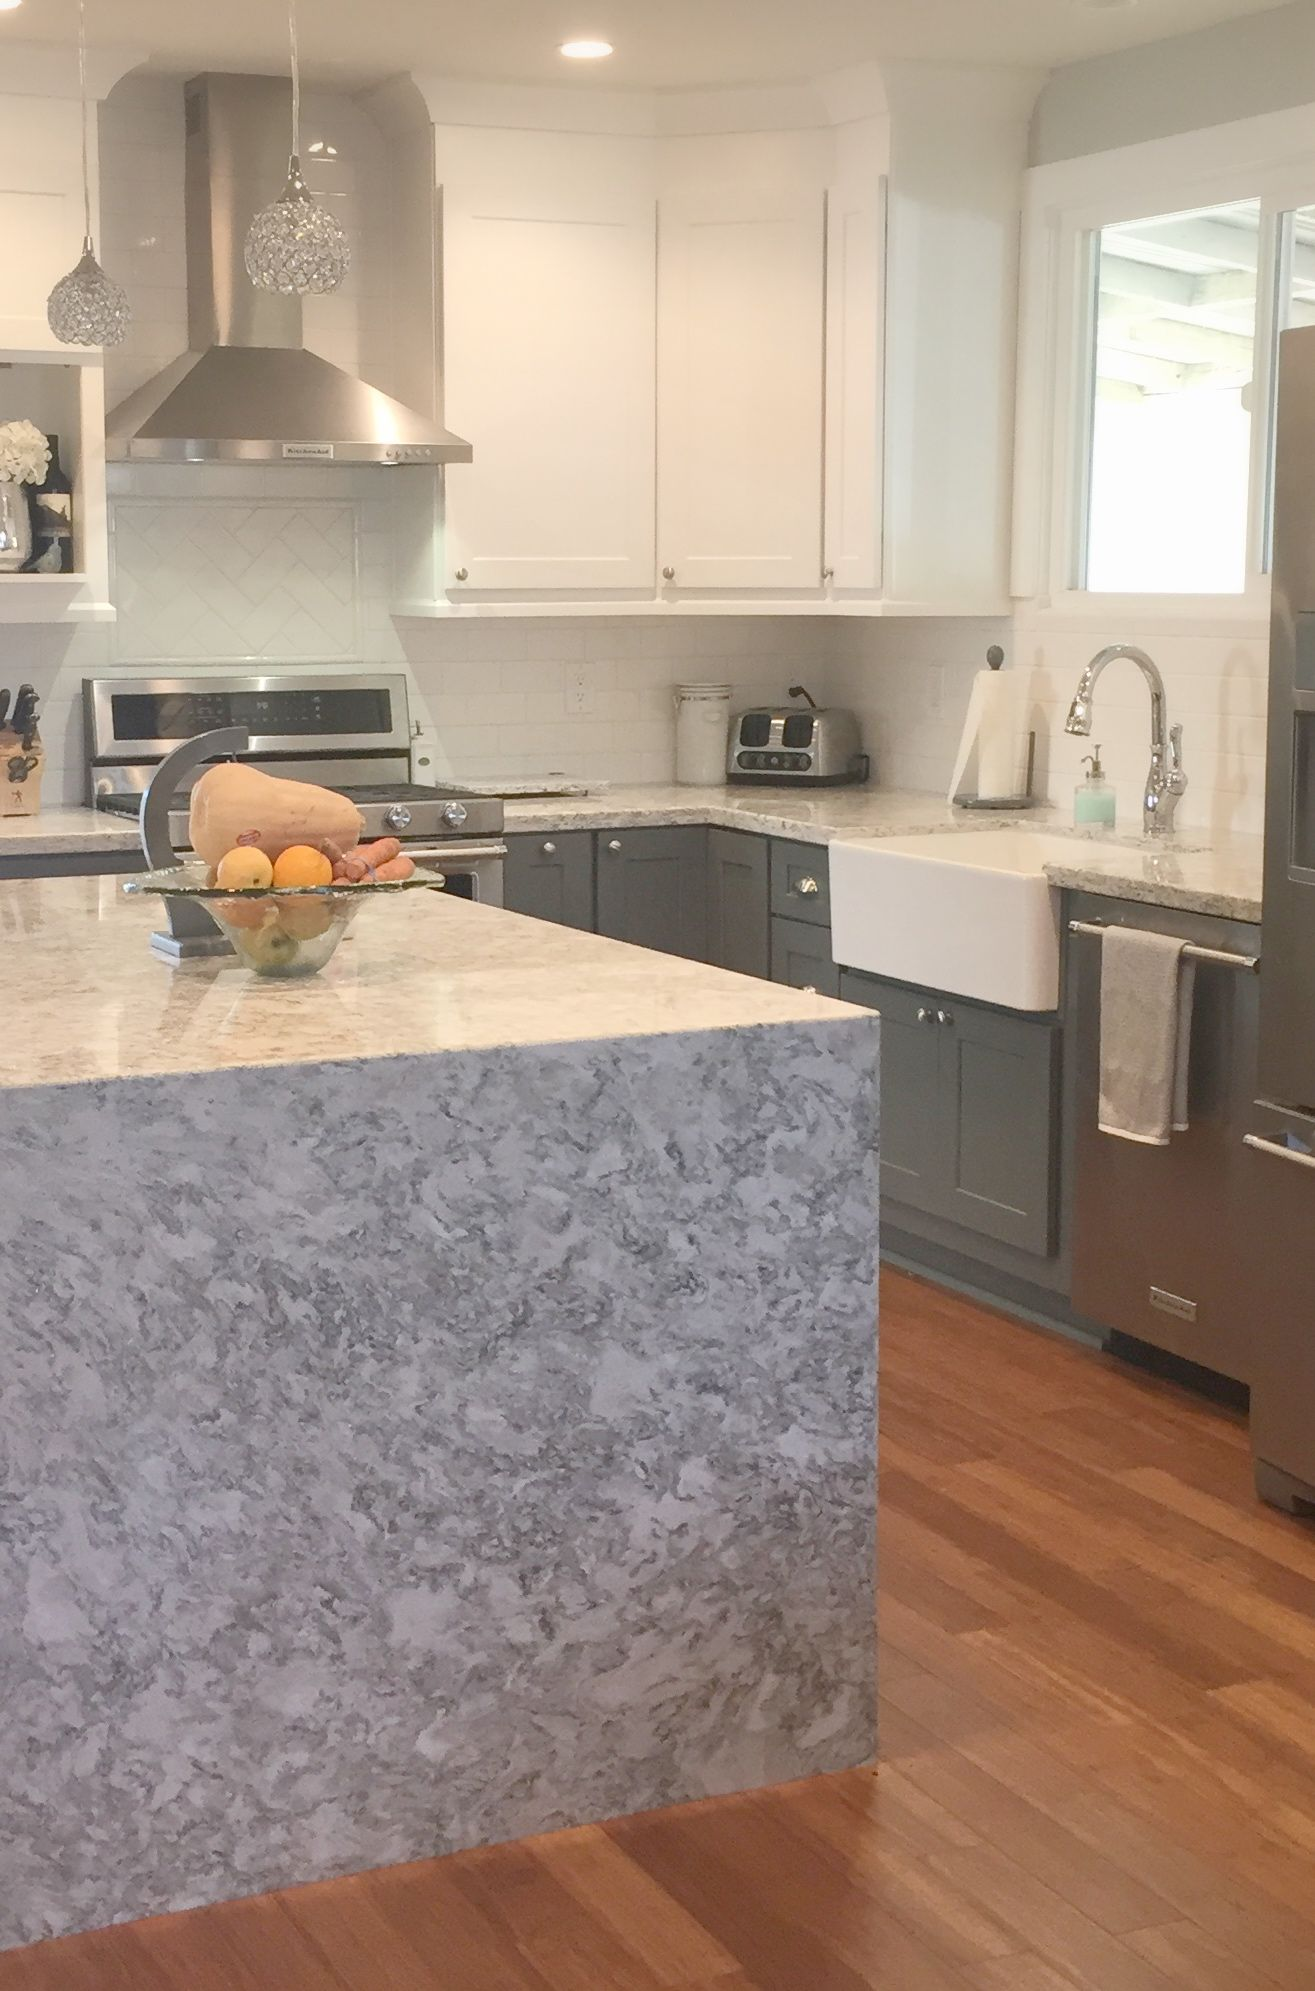 Waterfall Countertop Cambria Quartz Berwyn Gray Kitchen